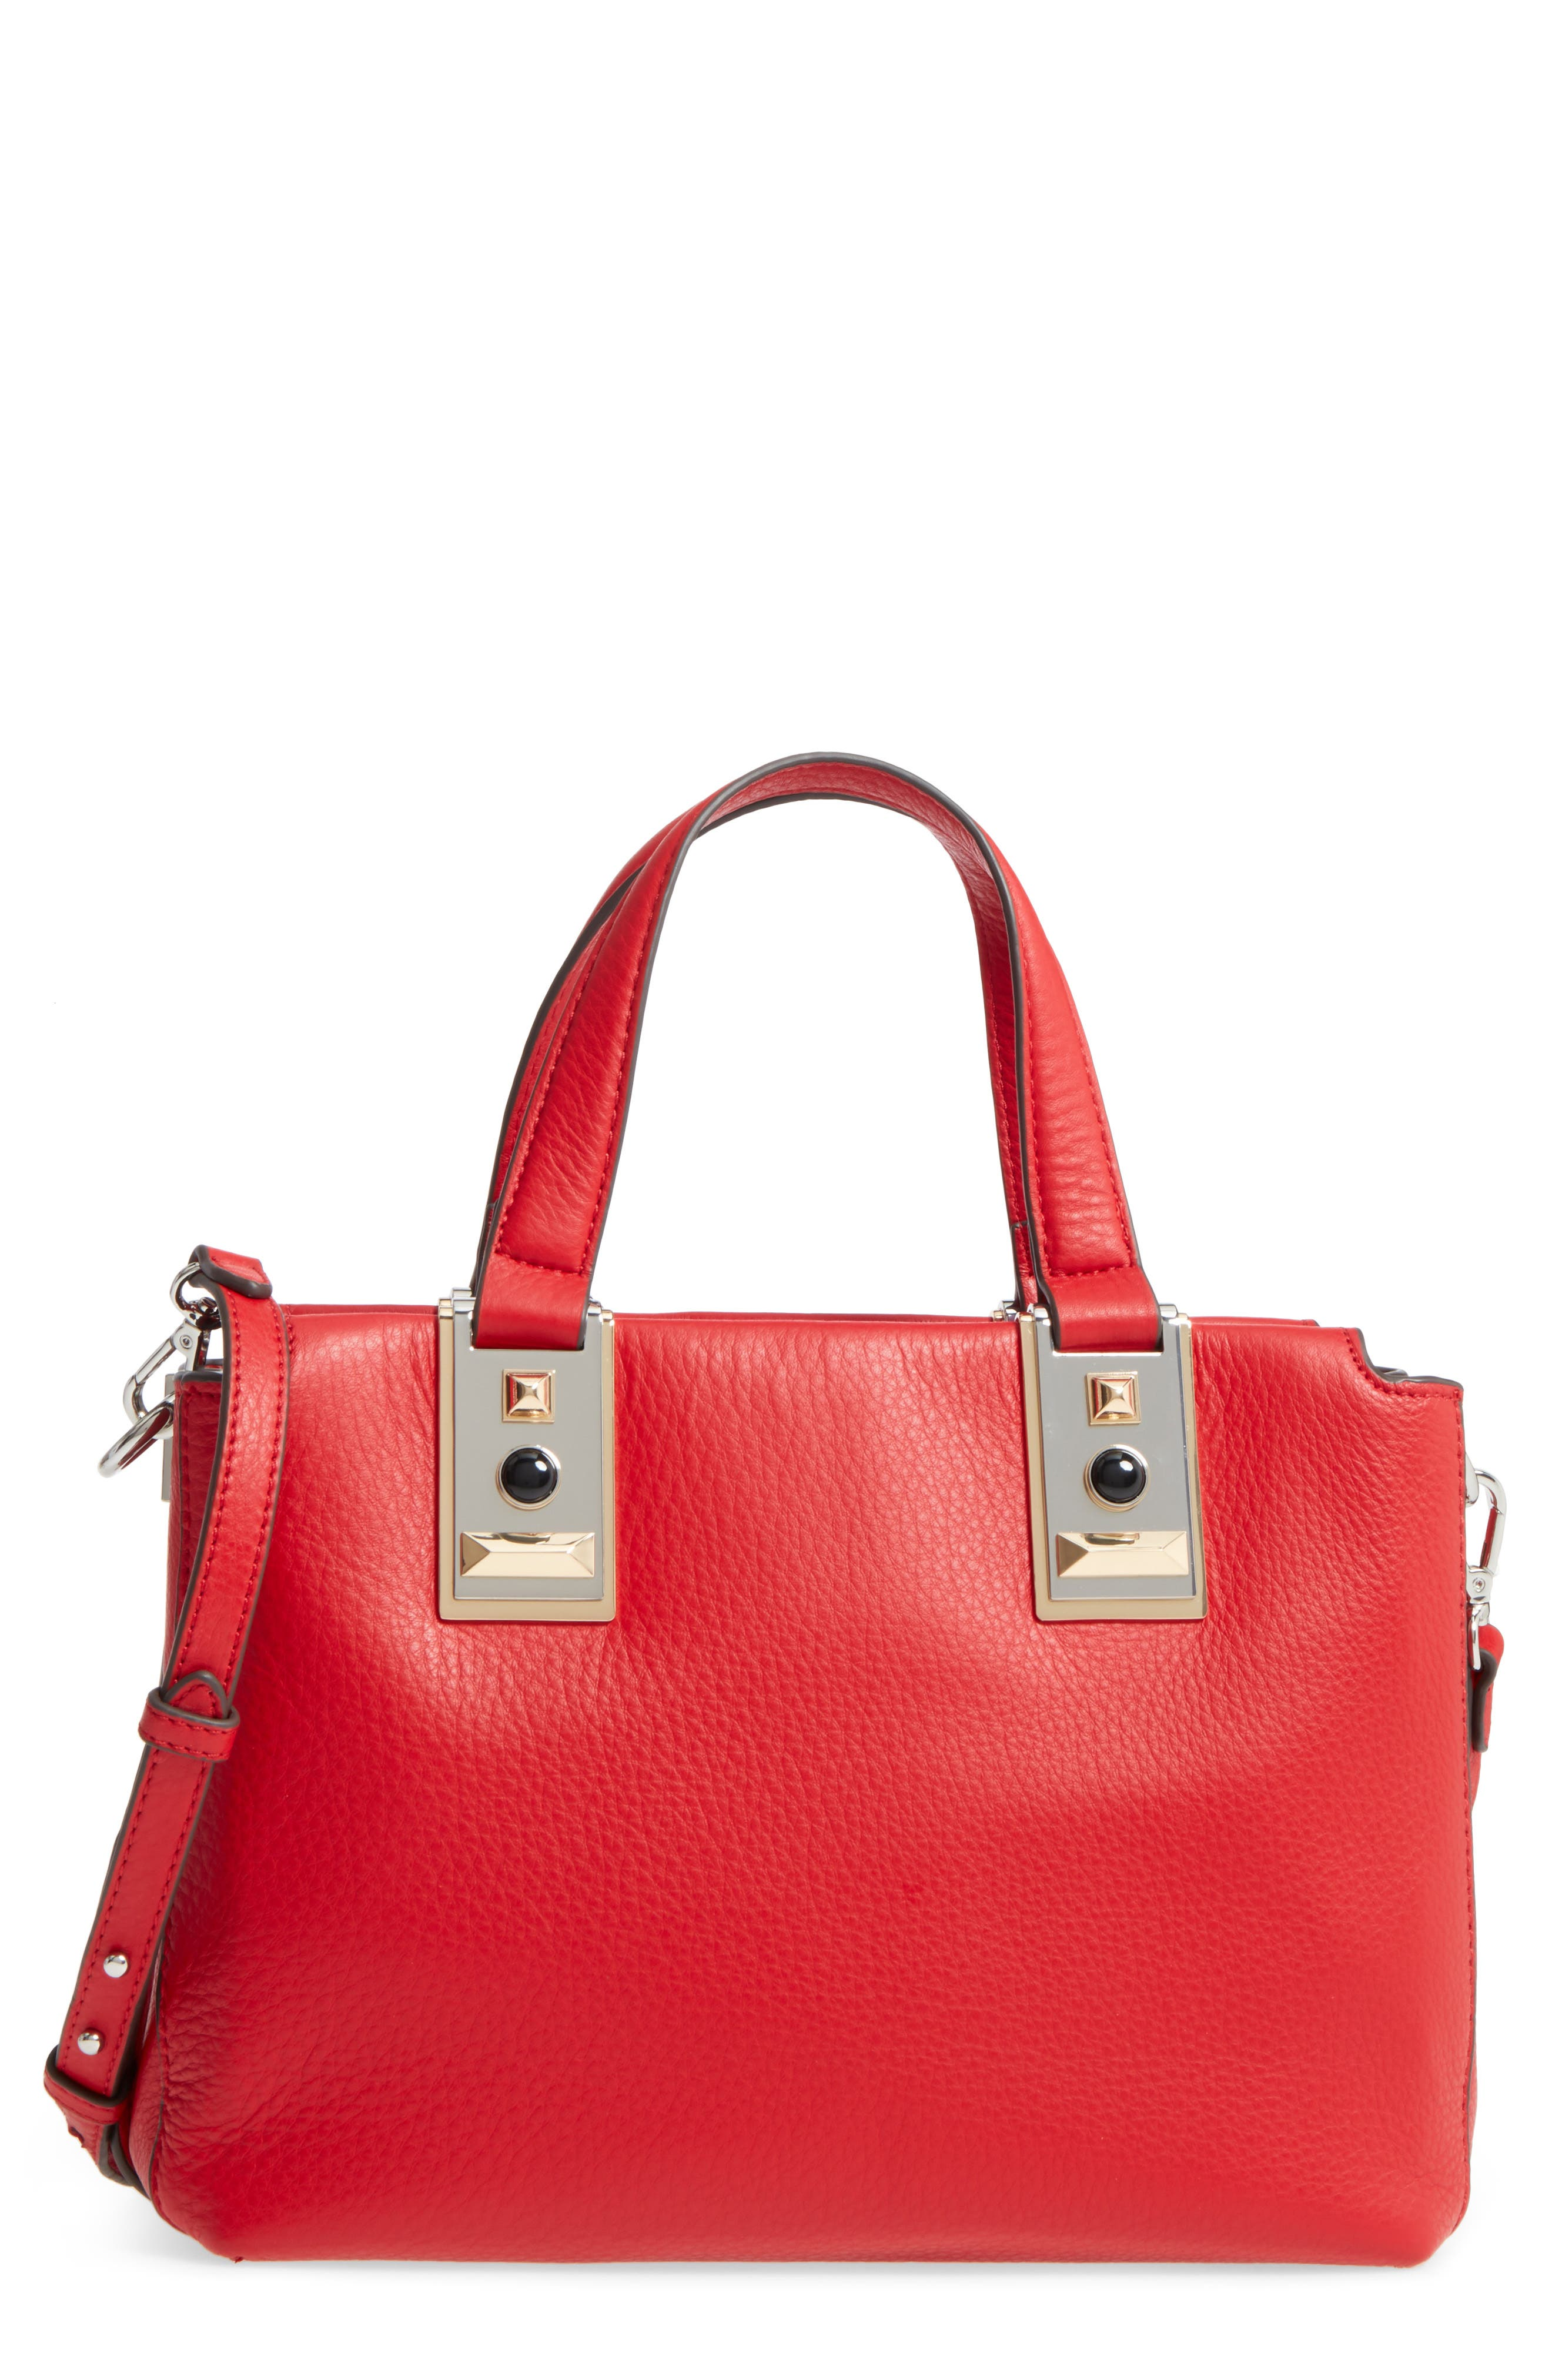 Main Image - Vince Camuto Bitty Leather Satchel